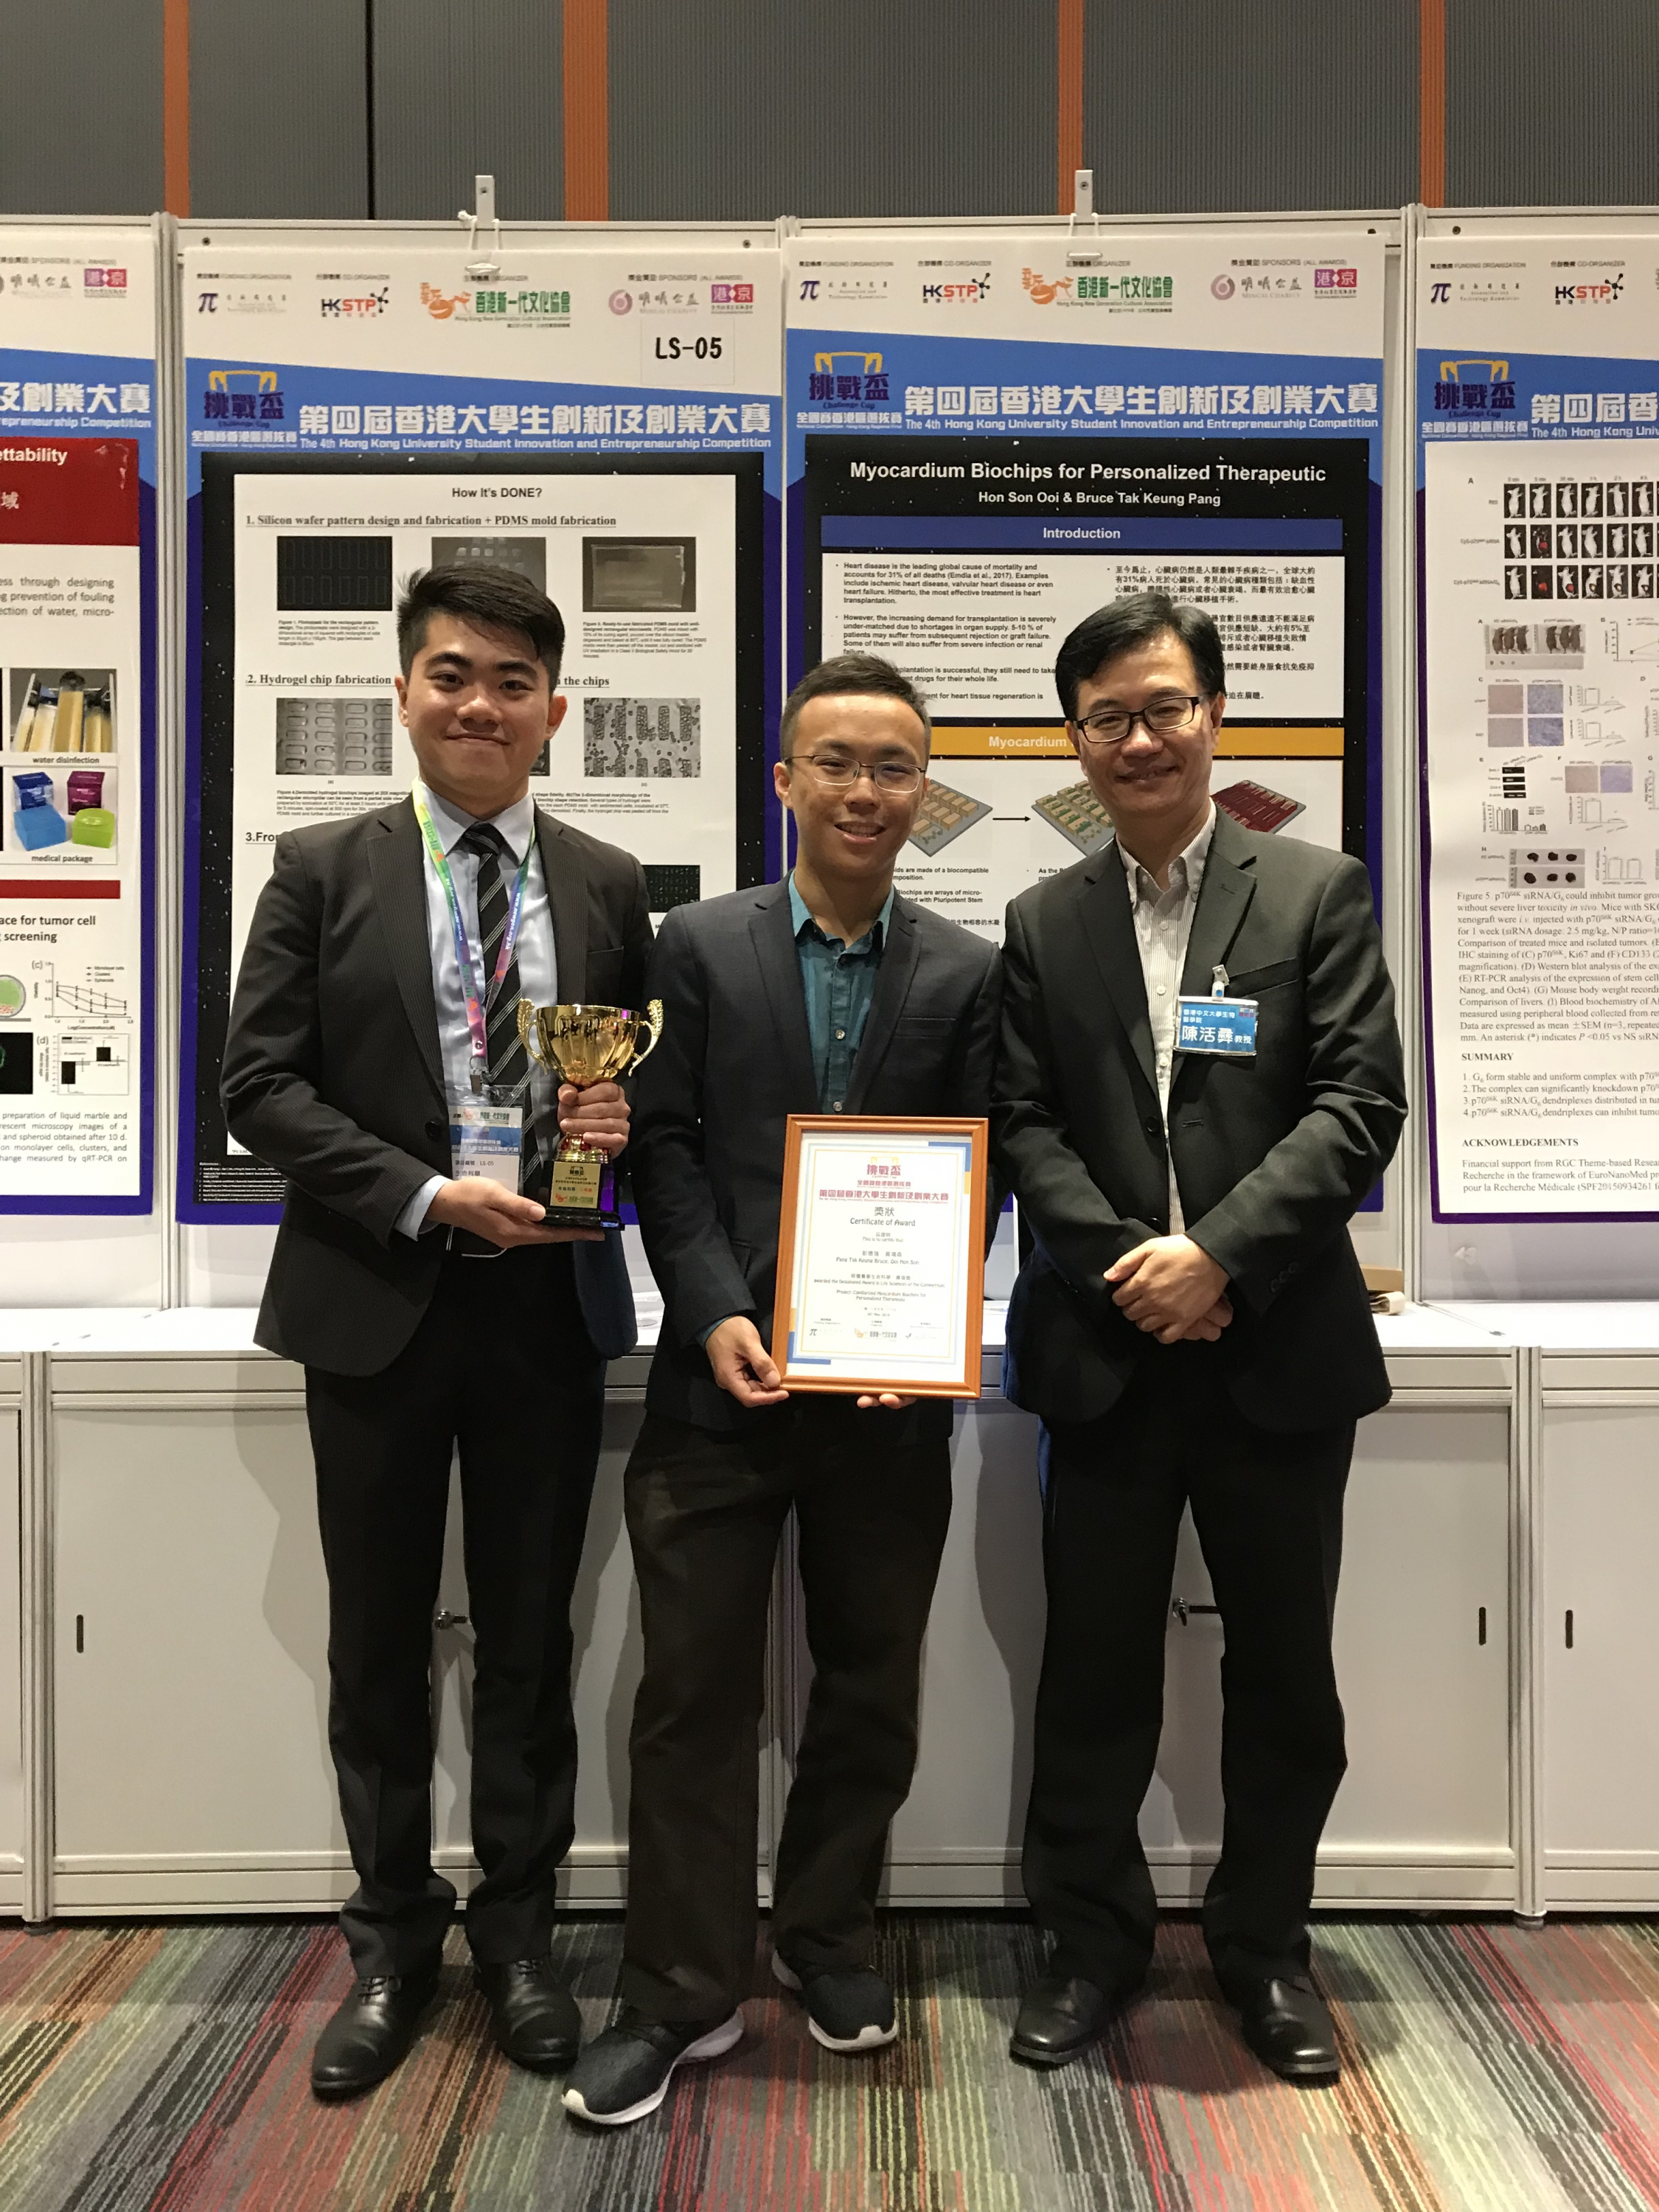 Bruce Pang (left), PhD student from the School of Biomedical Sciences, and OOI Hon Son (middle), graduate student from the Department of Biomedical Engineering, have awarded the Innovation Award in the Challenge Cup 2018.